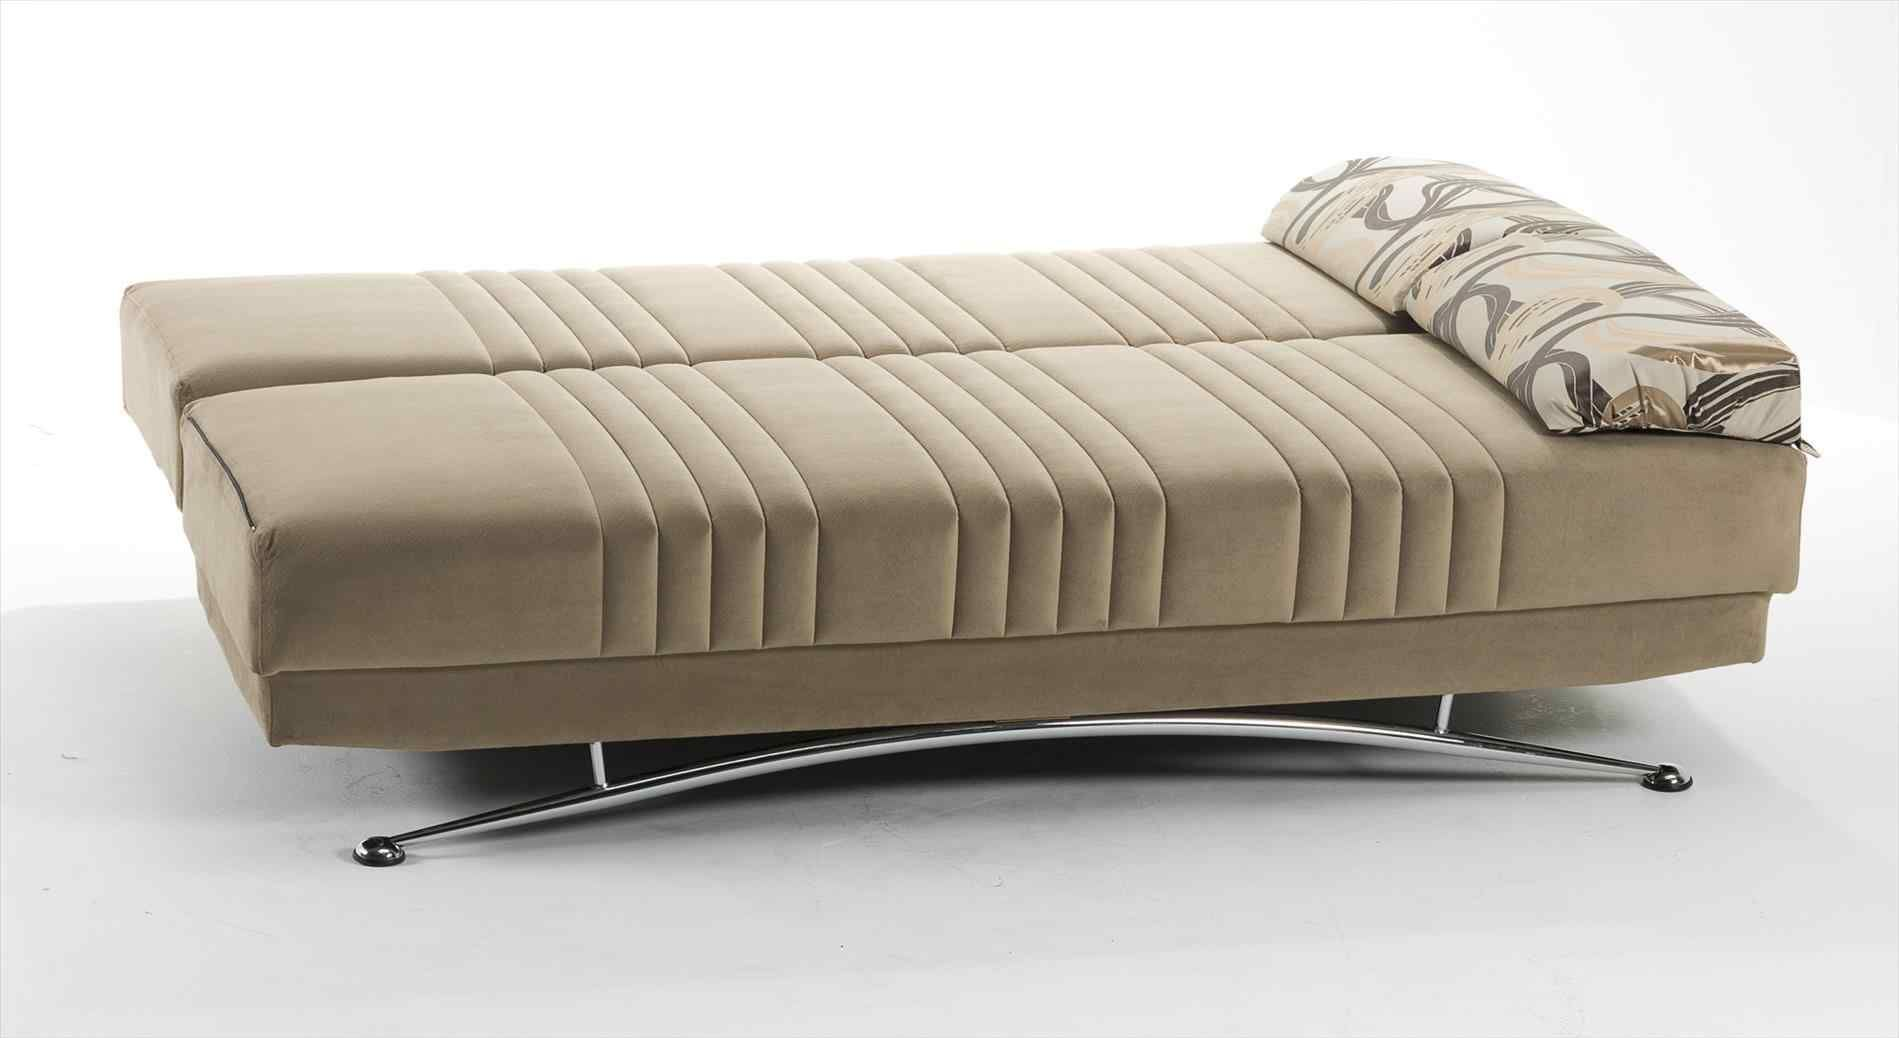 Best Leather Conditioner For Sofa | Couch U0026 Sofa Gallery | Pinterest |  Leather Conditioner, Couch Sofa And Showroom